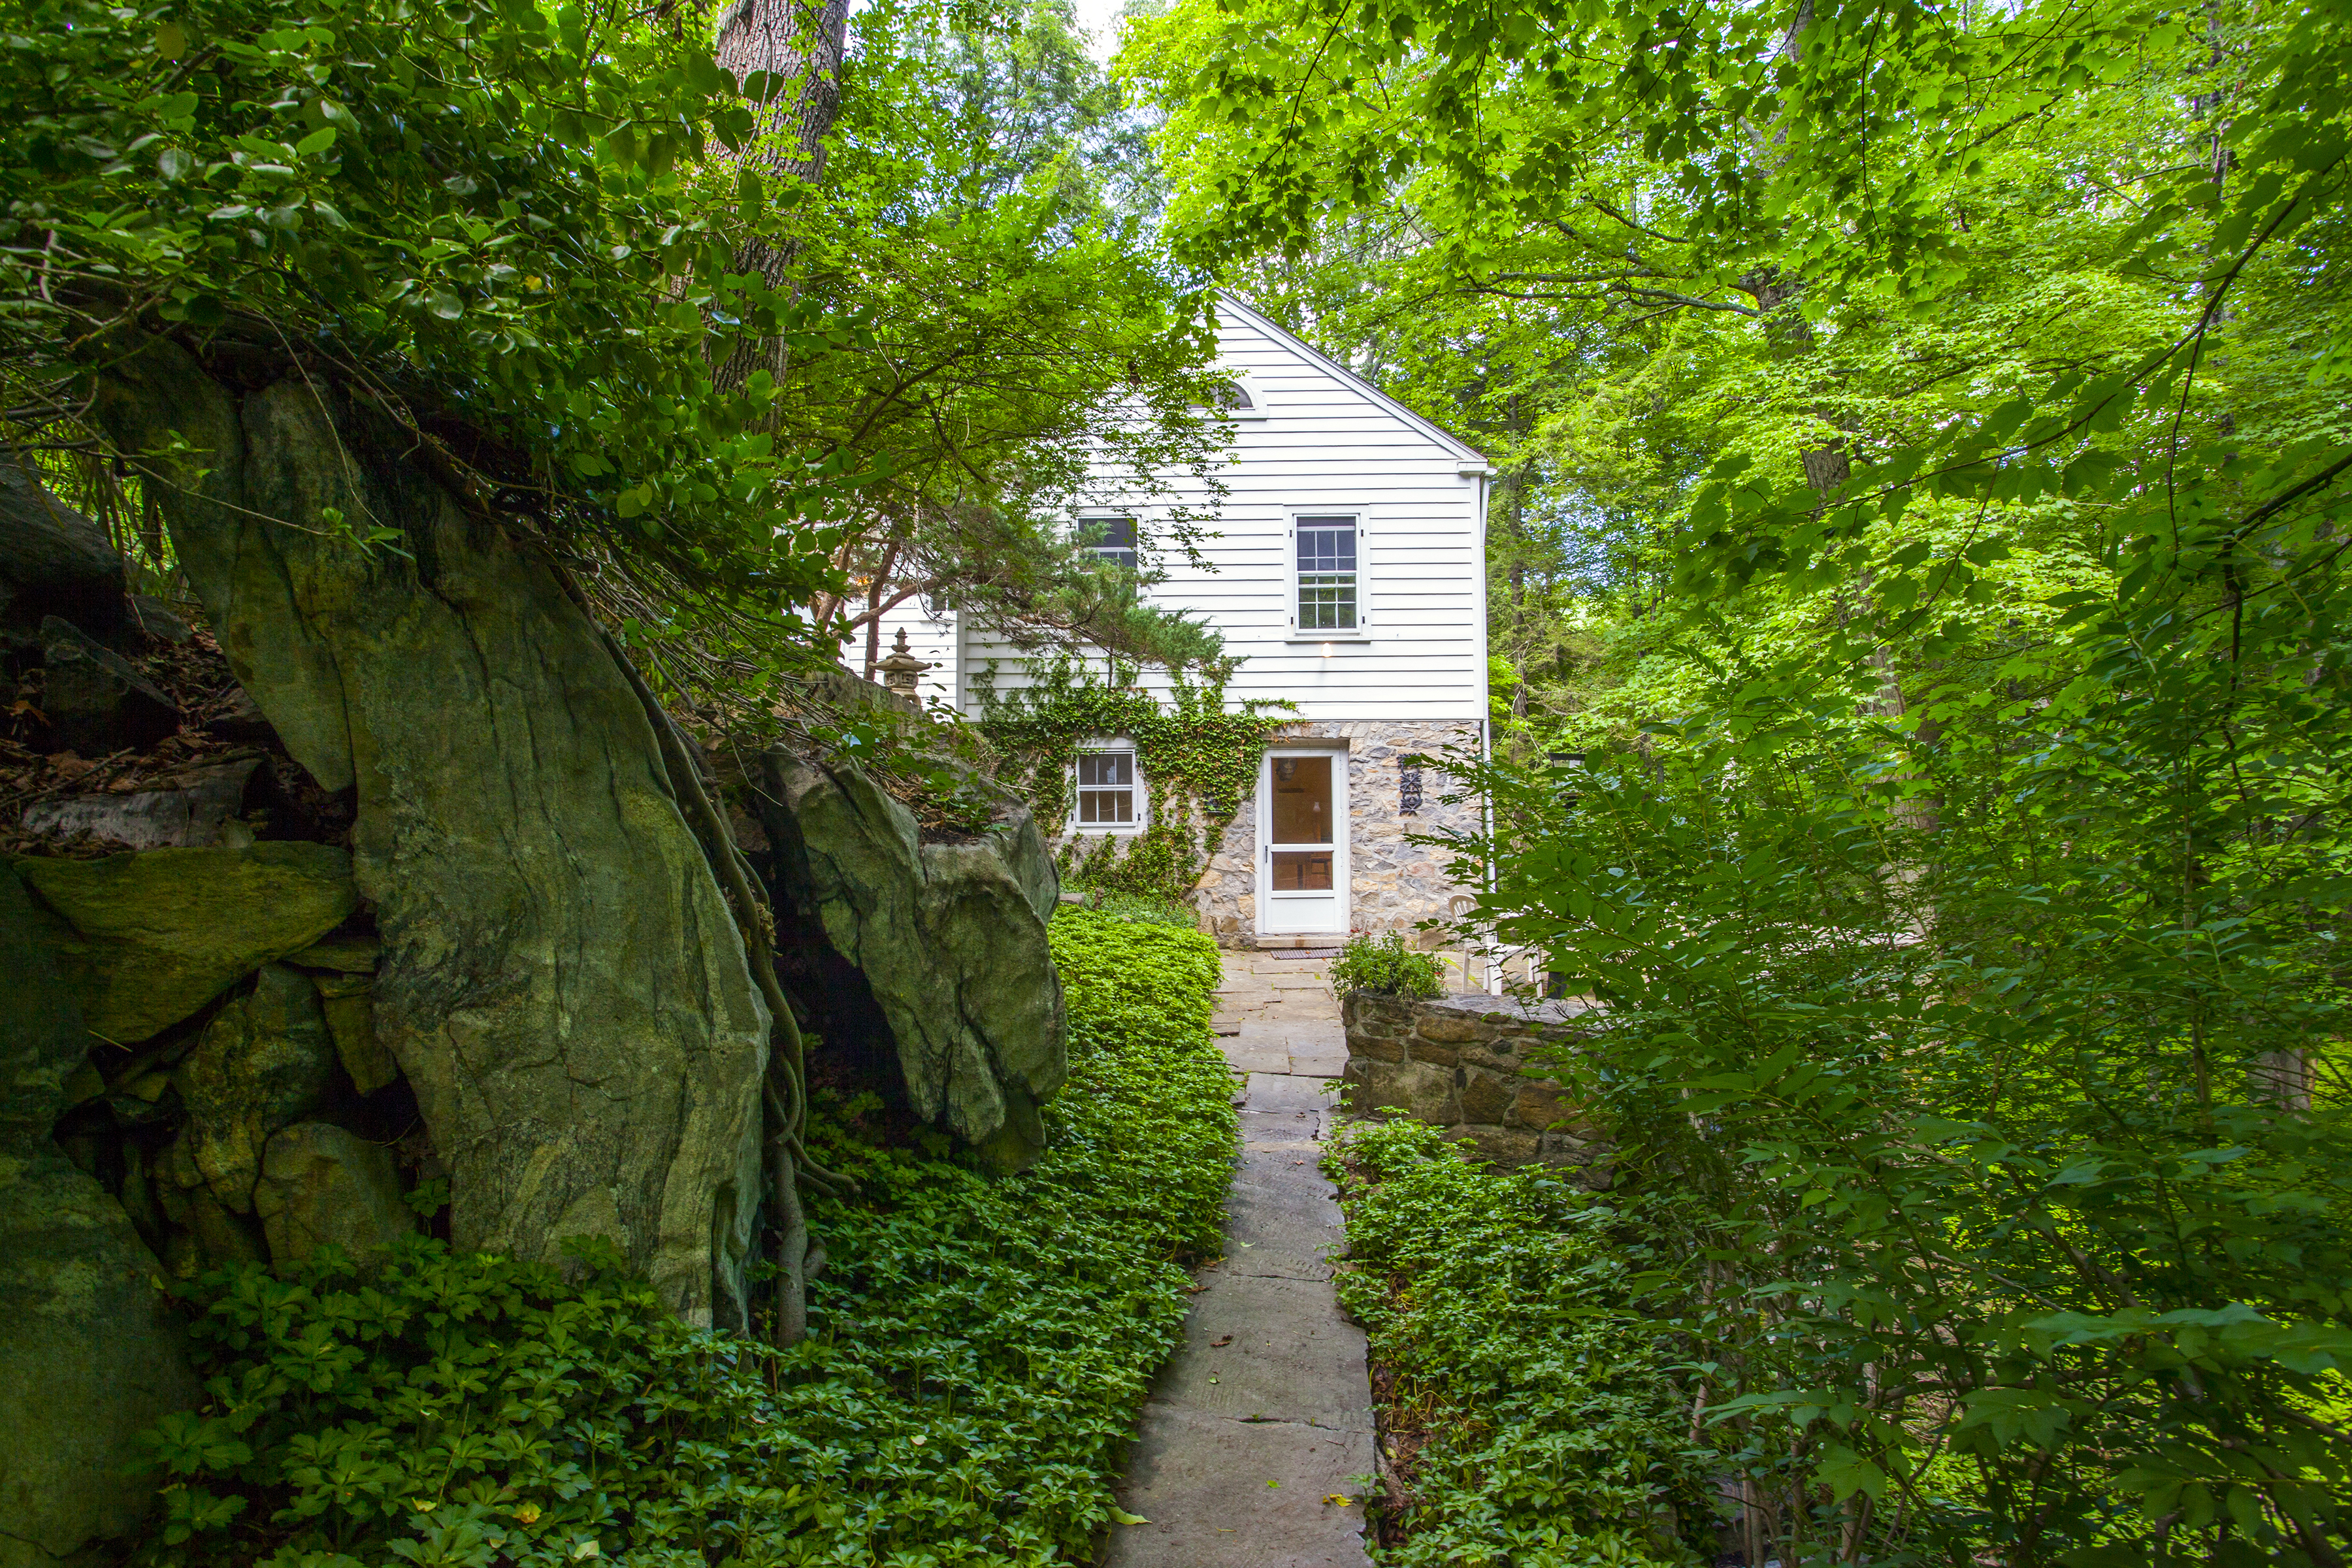 Single Family Home for Sale at Hidden Riverside Treasure 618 Kent Rd New Milford, Connecticut 06755 United States